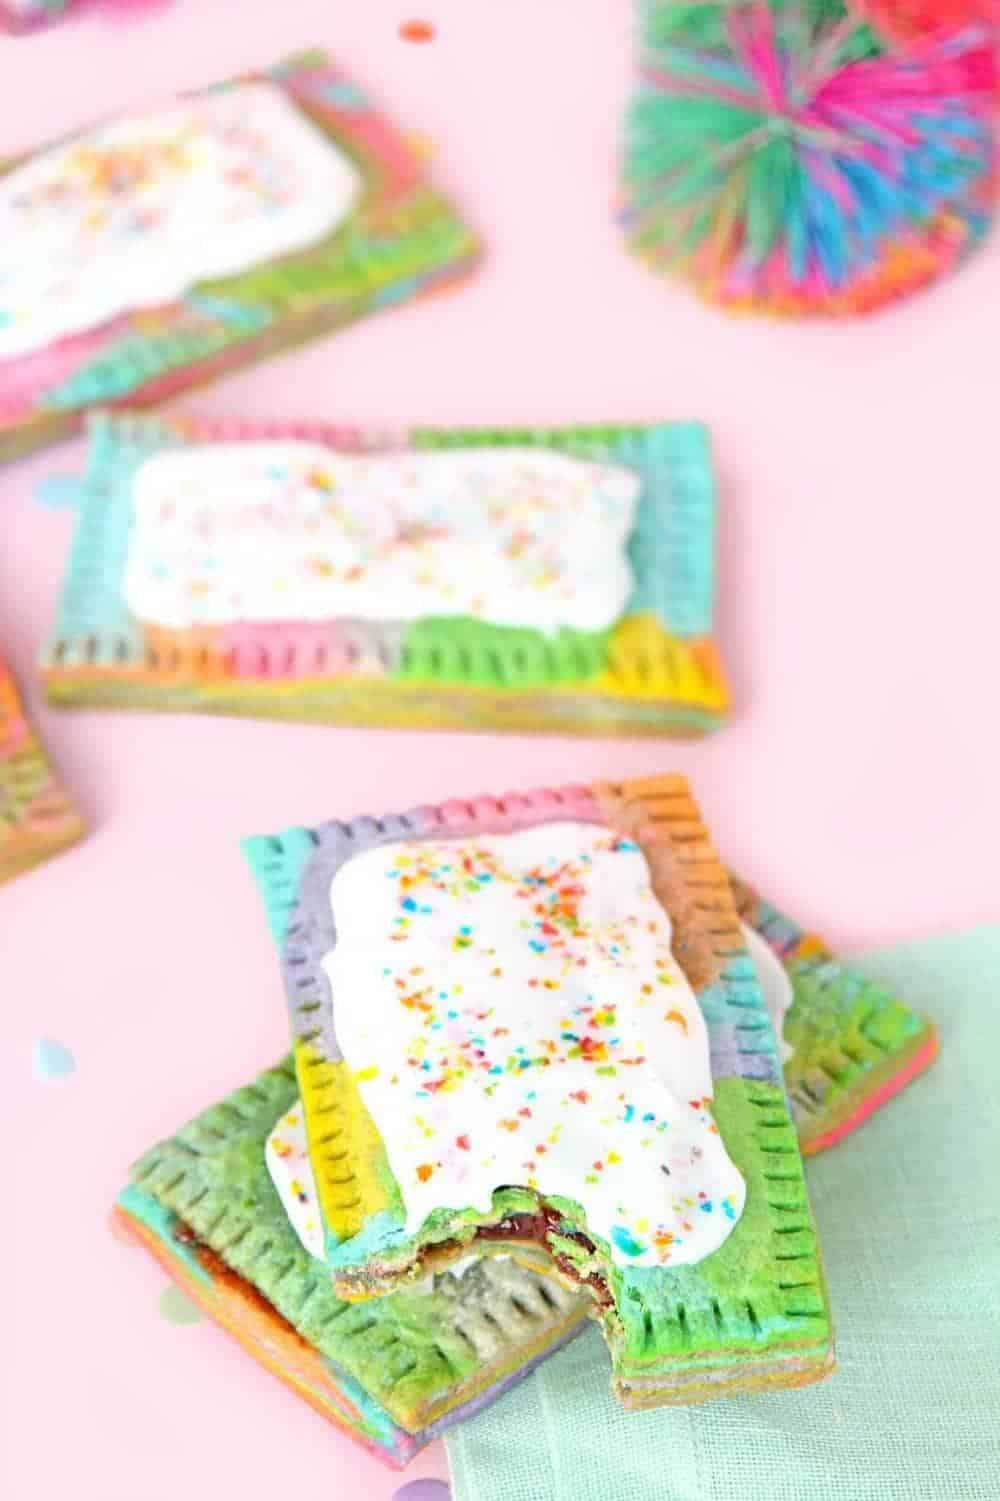 Rainbow poptarts + Top 50 Rainbow Desserts - the perfect way to celebrate St. Patrick's Day and welcome spring!